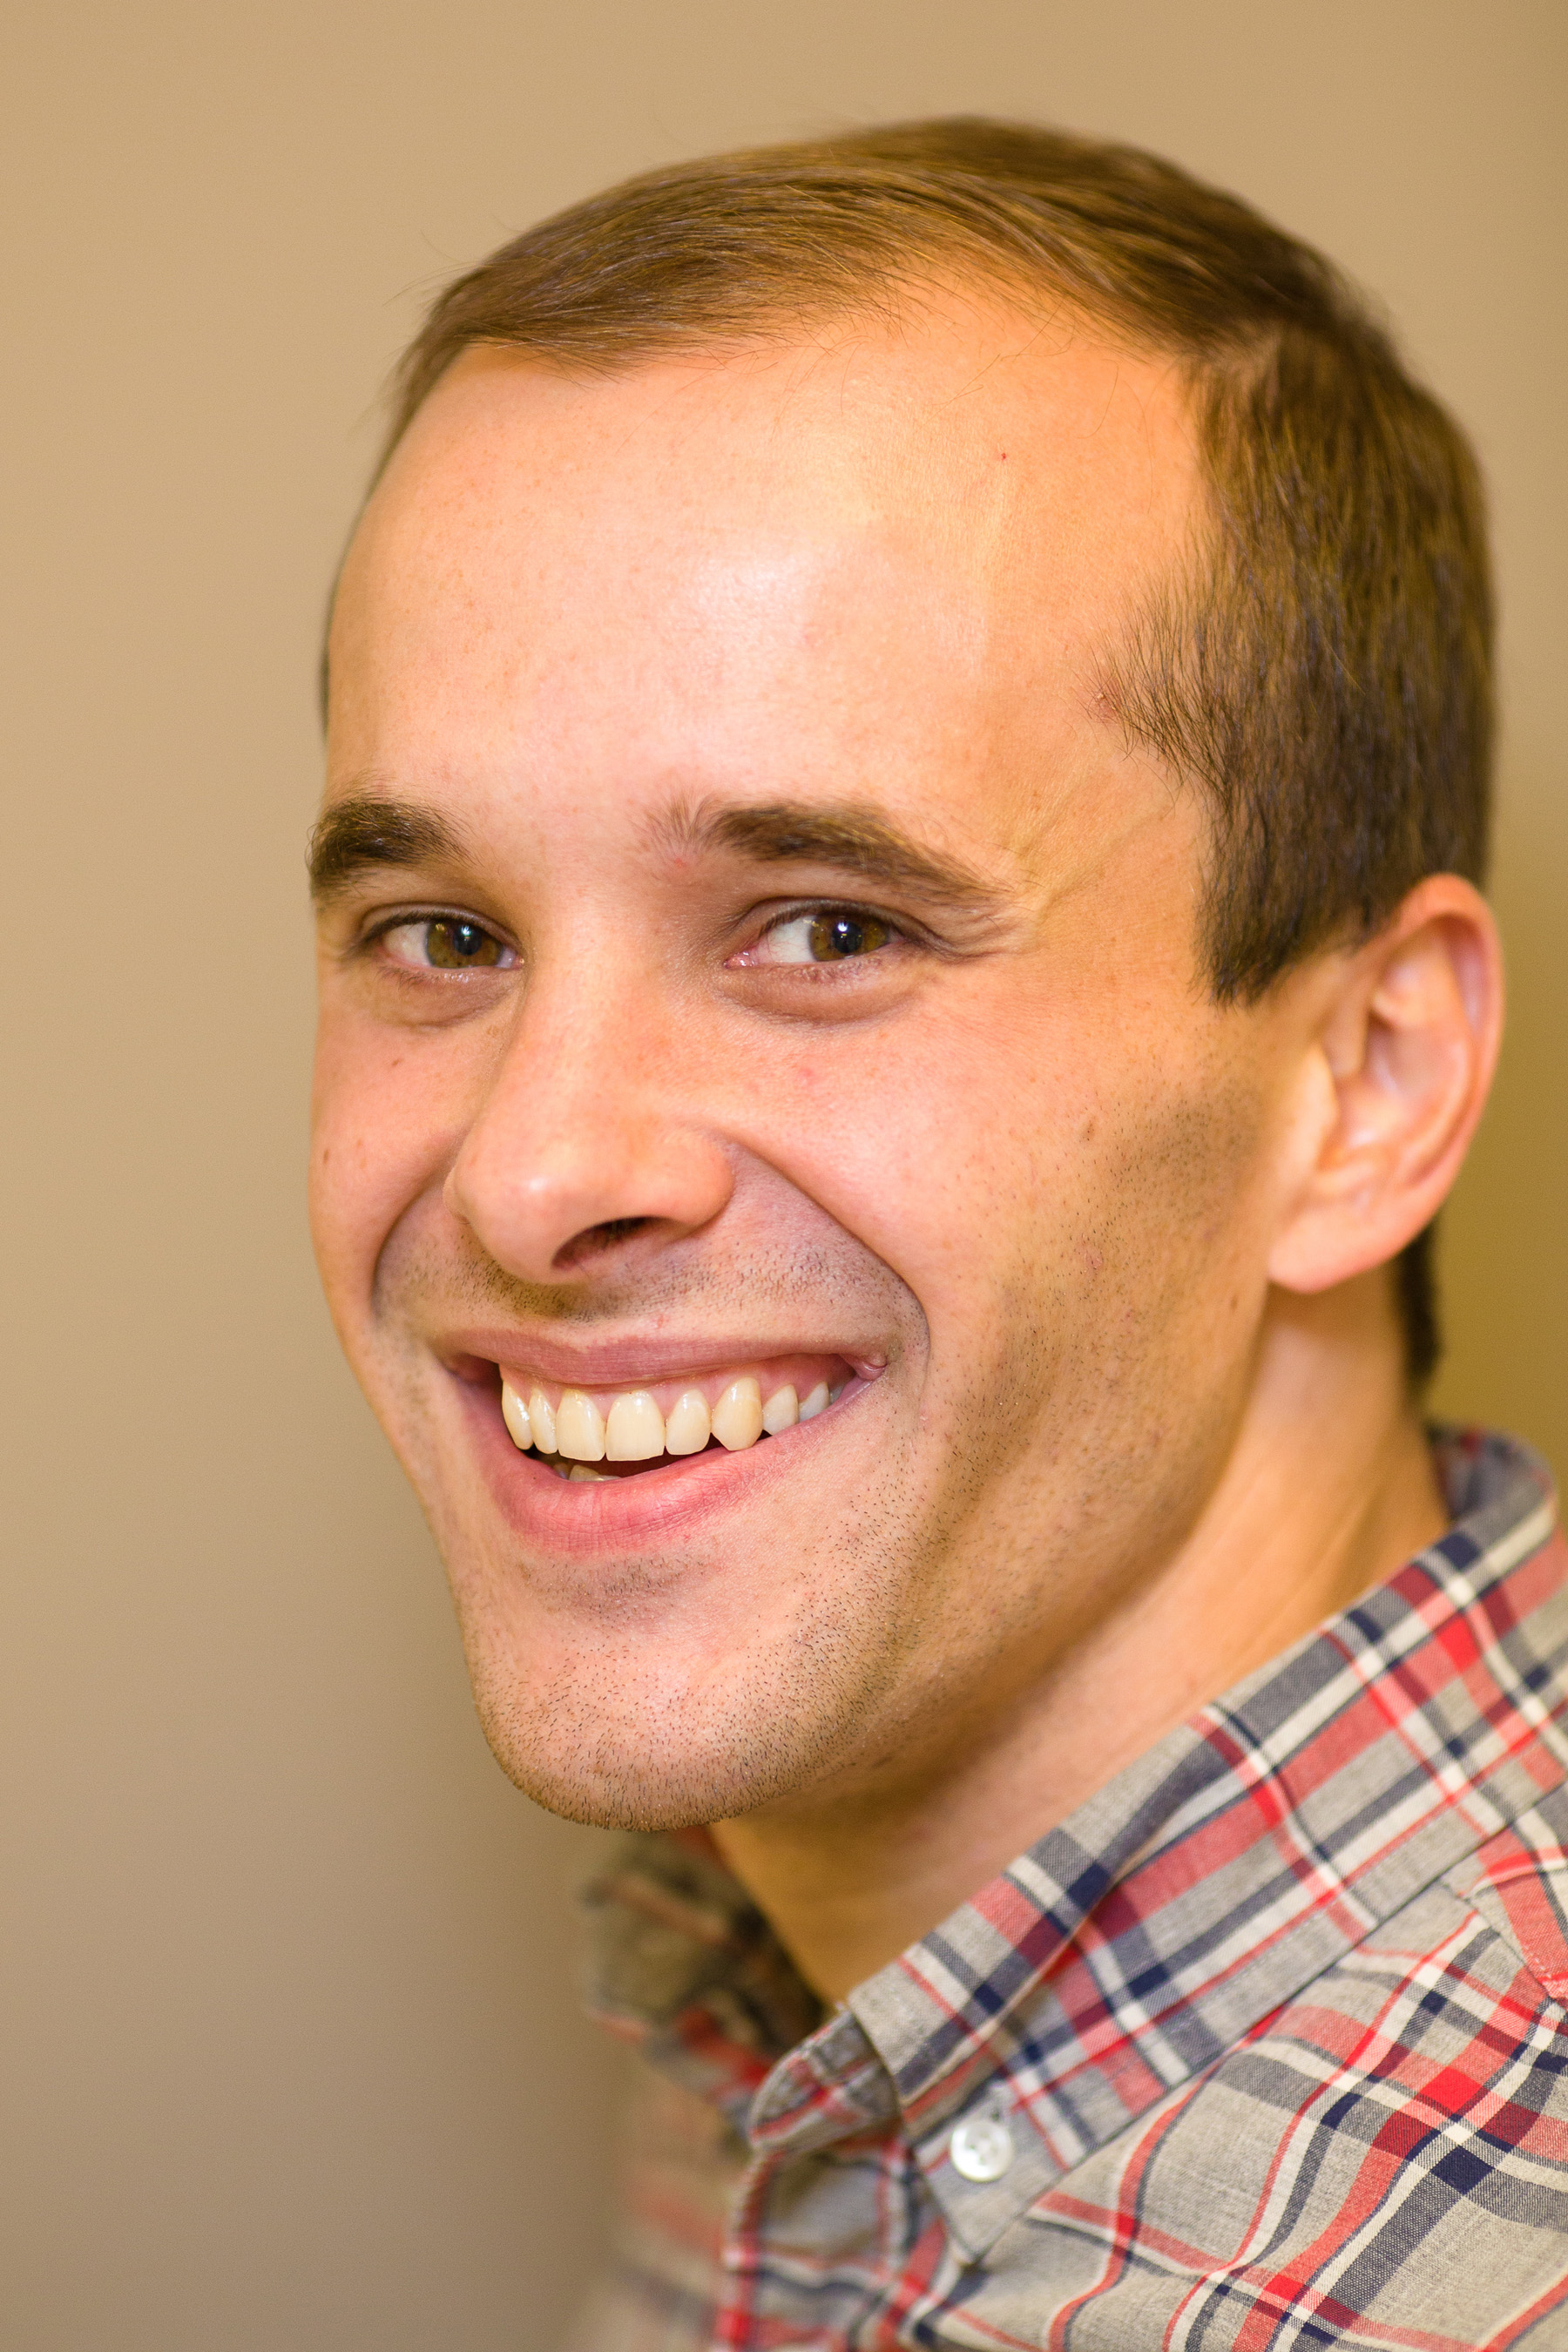 Zach Smola is the BCPC Coordinator for Employer Partners at Project Place